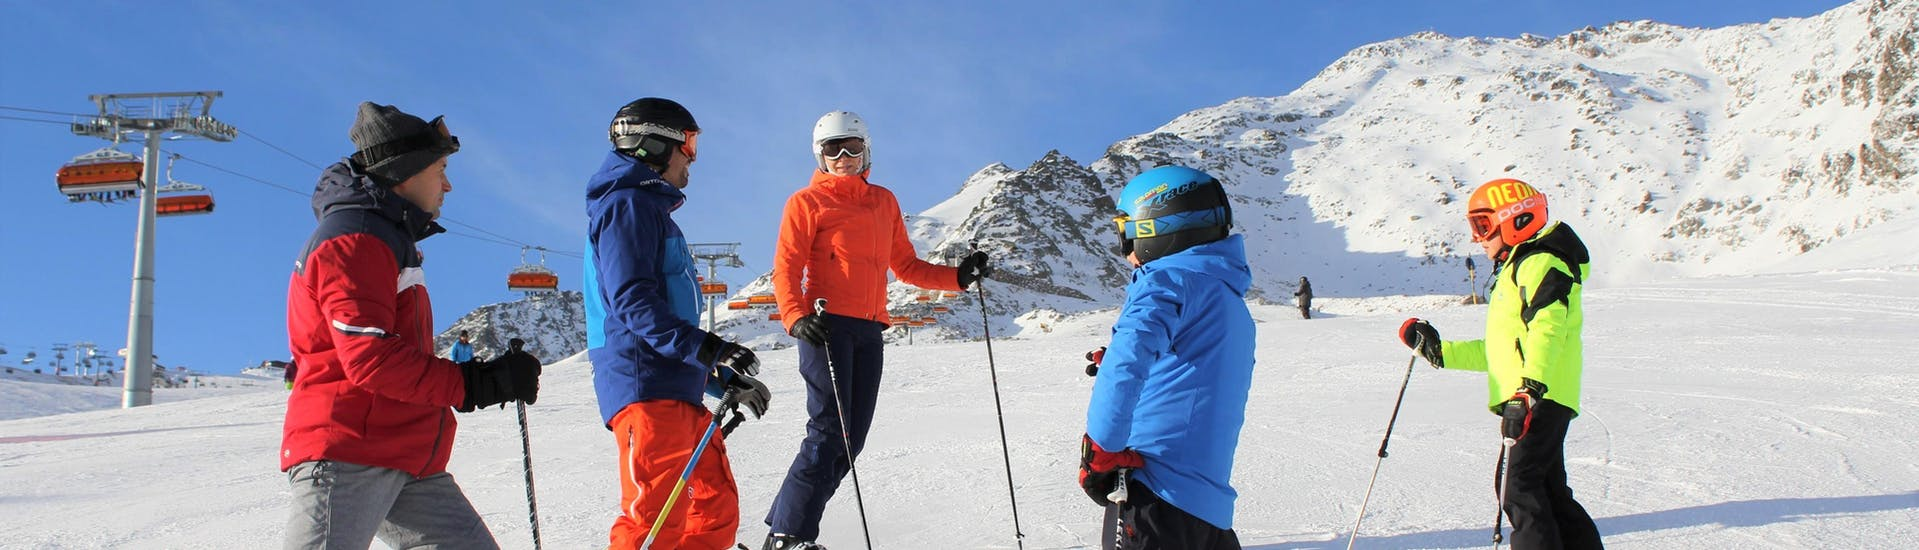 "A ski instructor is explaining the best ski techniques during a Private Ski Lessons ""Family and Friends"" Obergurgl-Hochgurgl organized by the ski school Ski- und Snowboardschule SNOWLINES Sölden in the ski resort of Sölden."